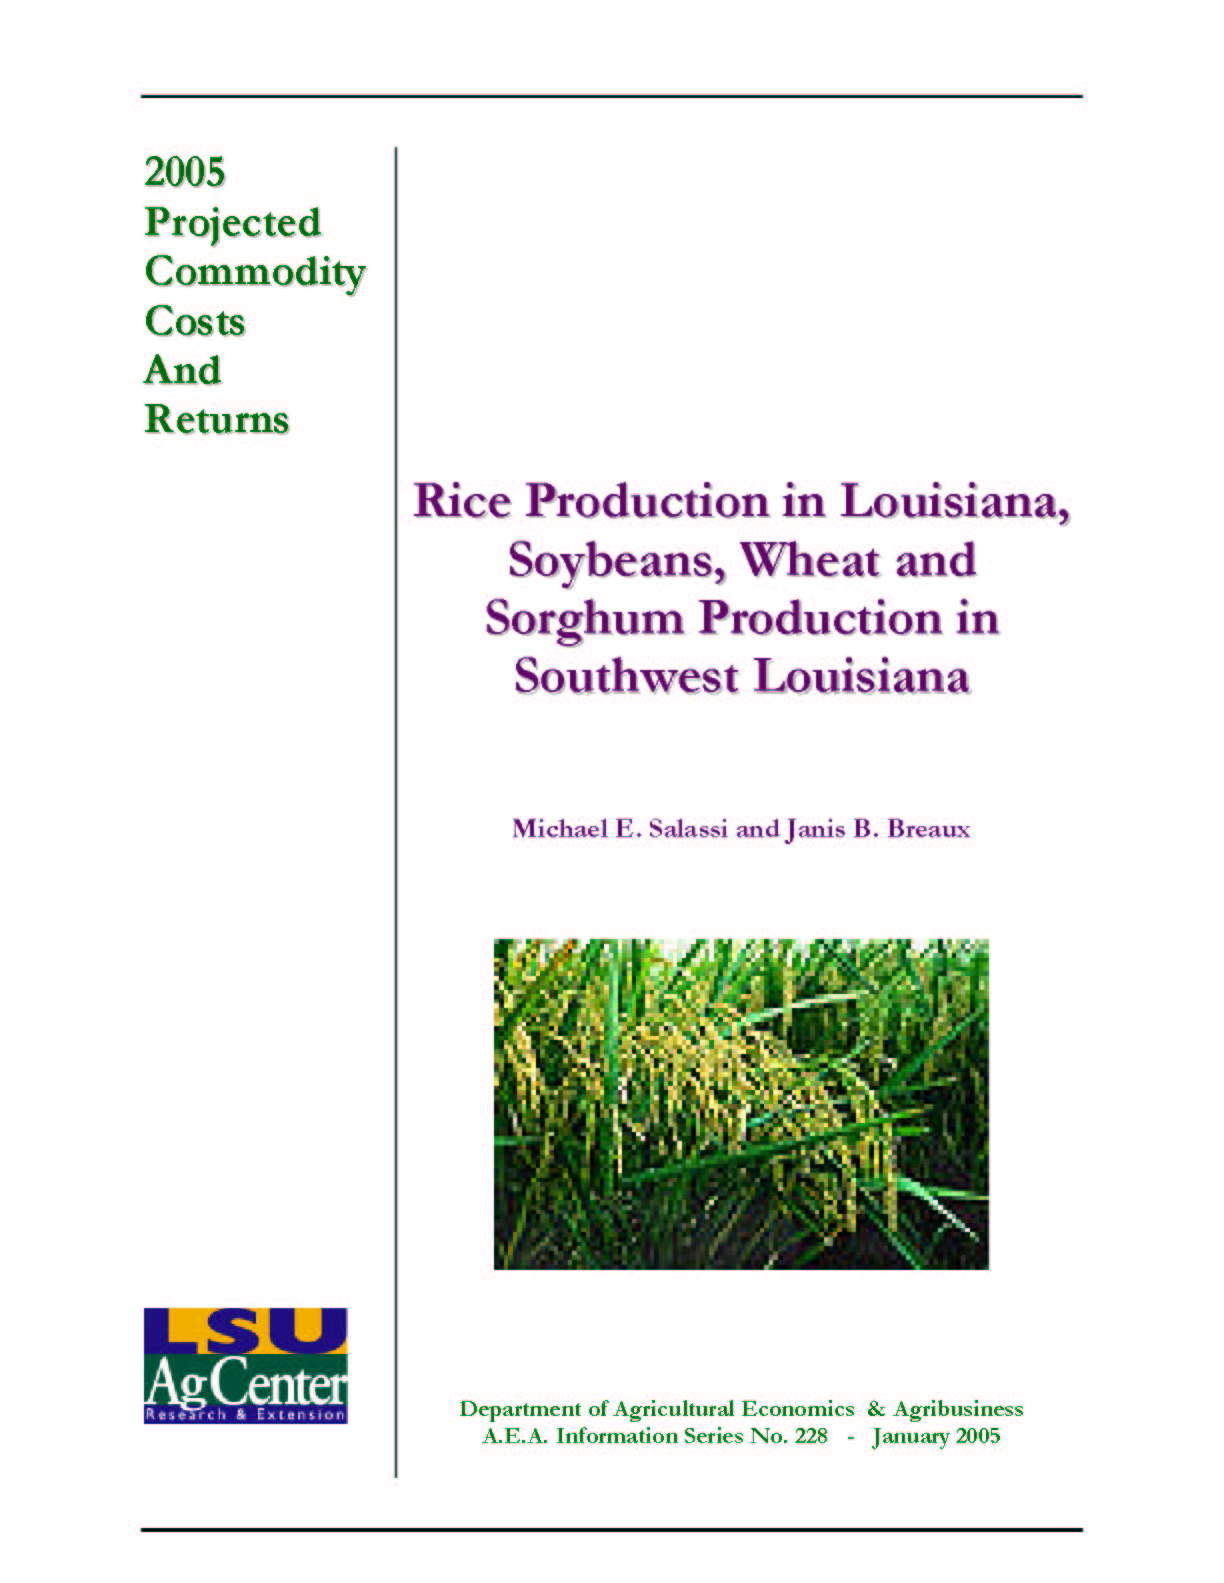 2005 Projected Louisiana Rice Production Costs